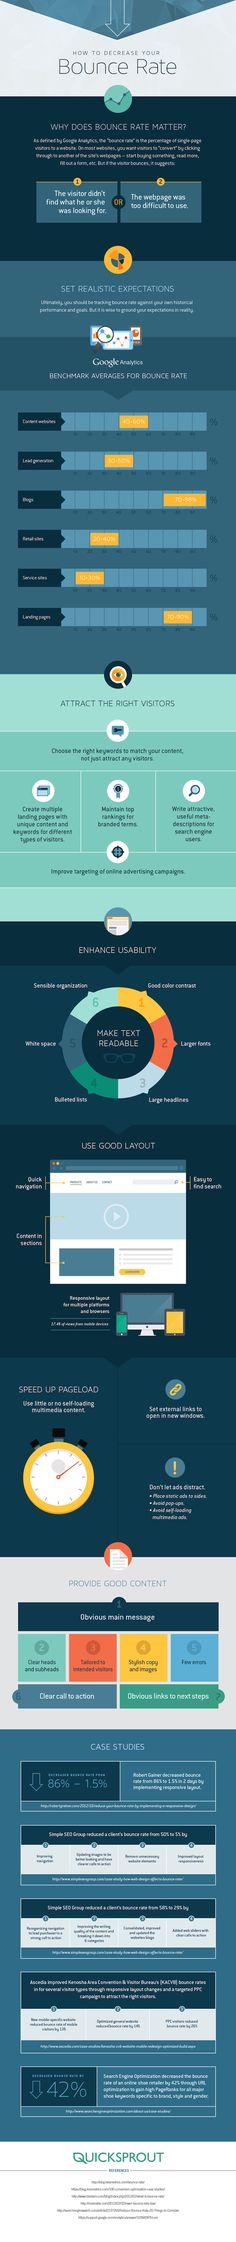 The best #BounceRate average is best determined by the type of #Website you have #Infographic